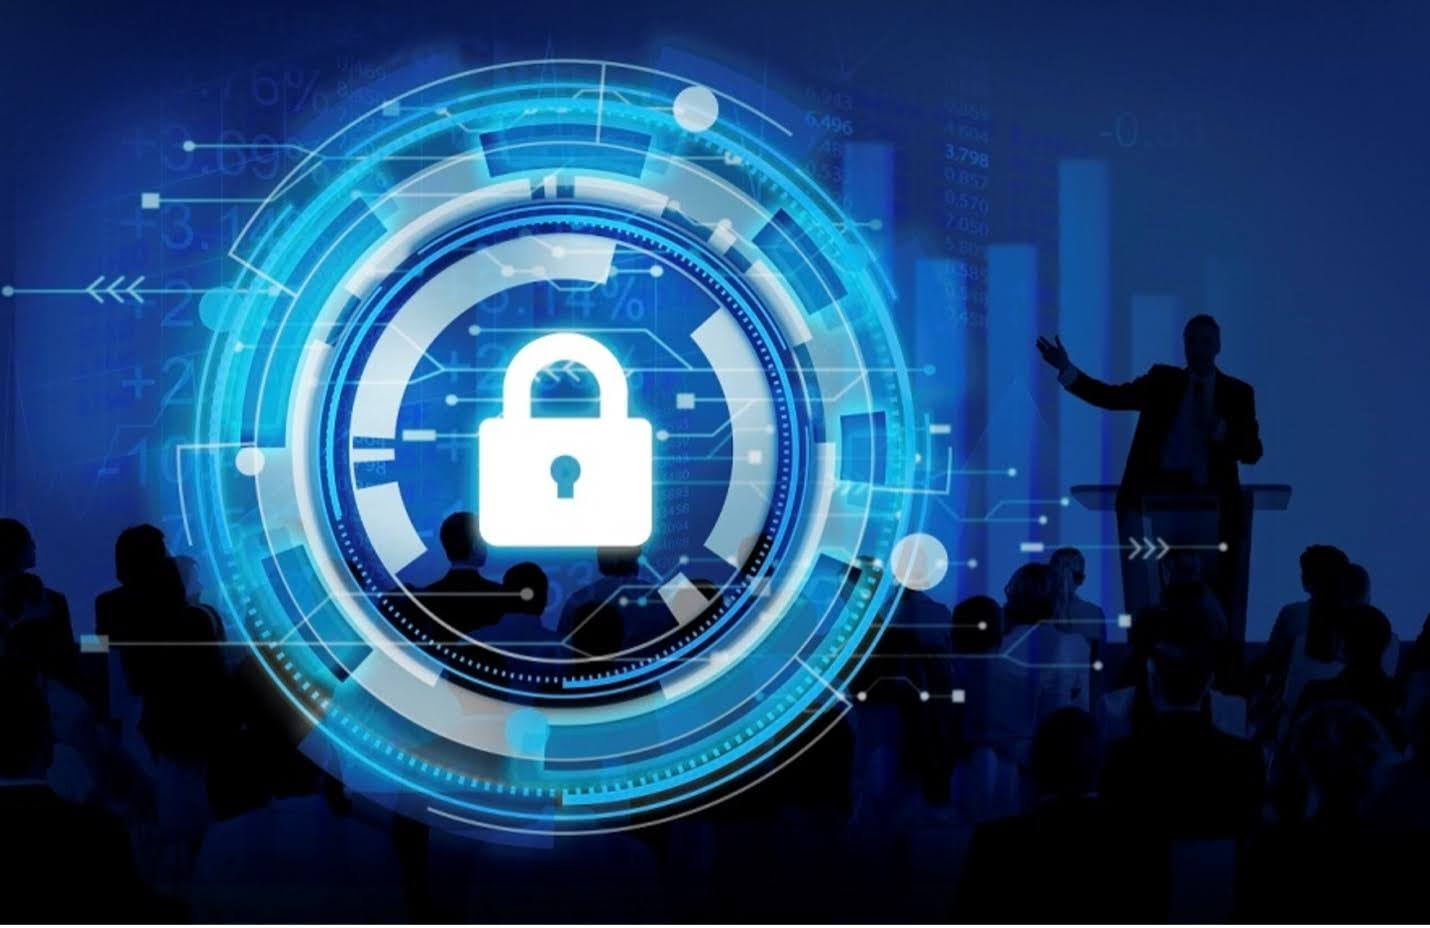 Study of Cybersecurity at Charles Darwin University